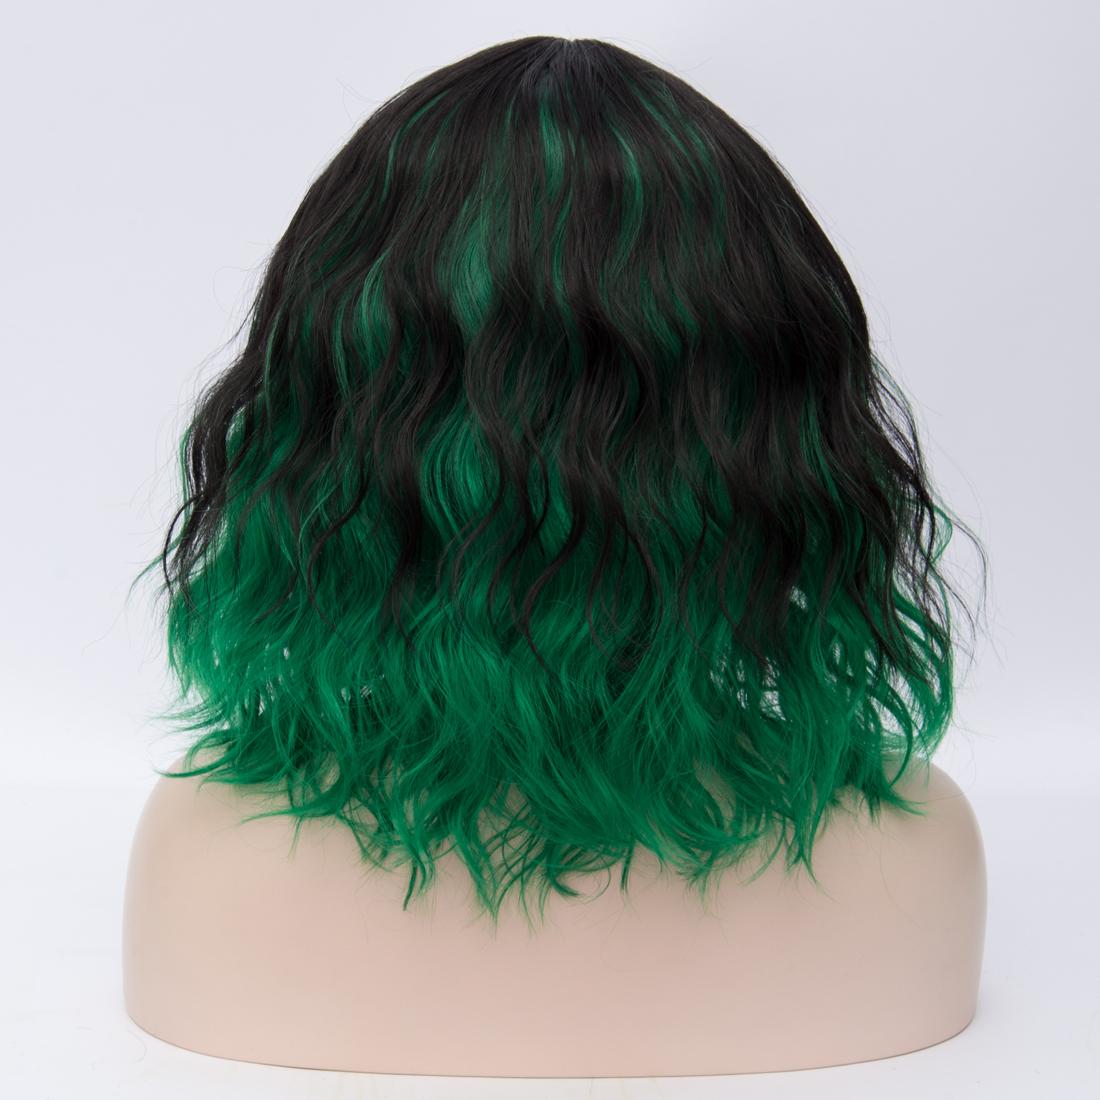 H14dbc71b702748b9a2a7dfa321defc9ea - Similler Short Synthetic Wig for Women Cosplay Curly Hair Heat Resistance Ombre Color Blue Purple Pink Green Orange Two Tones